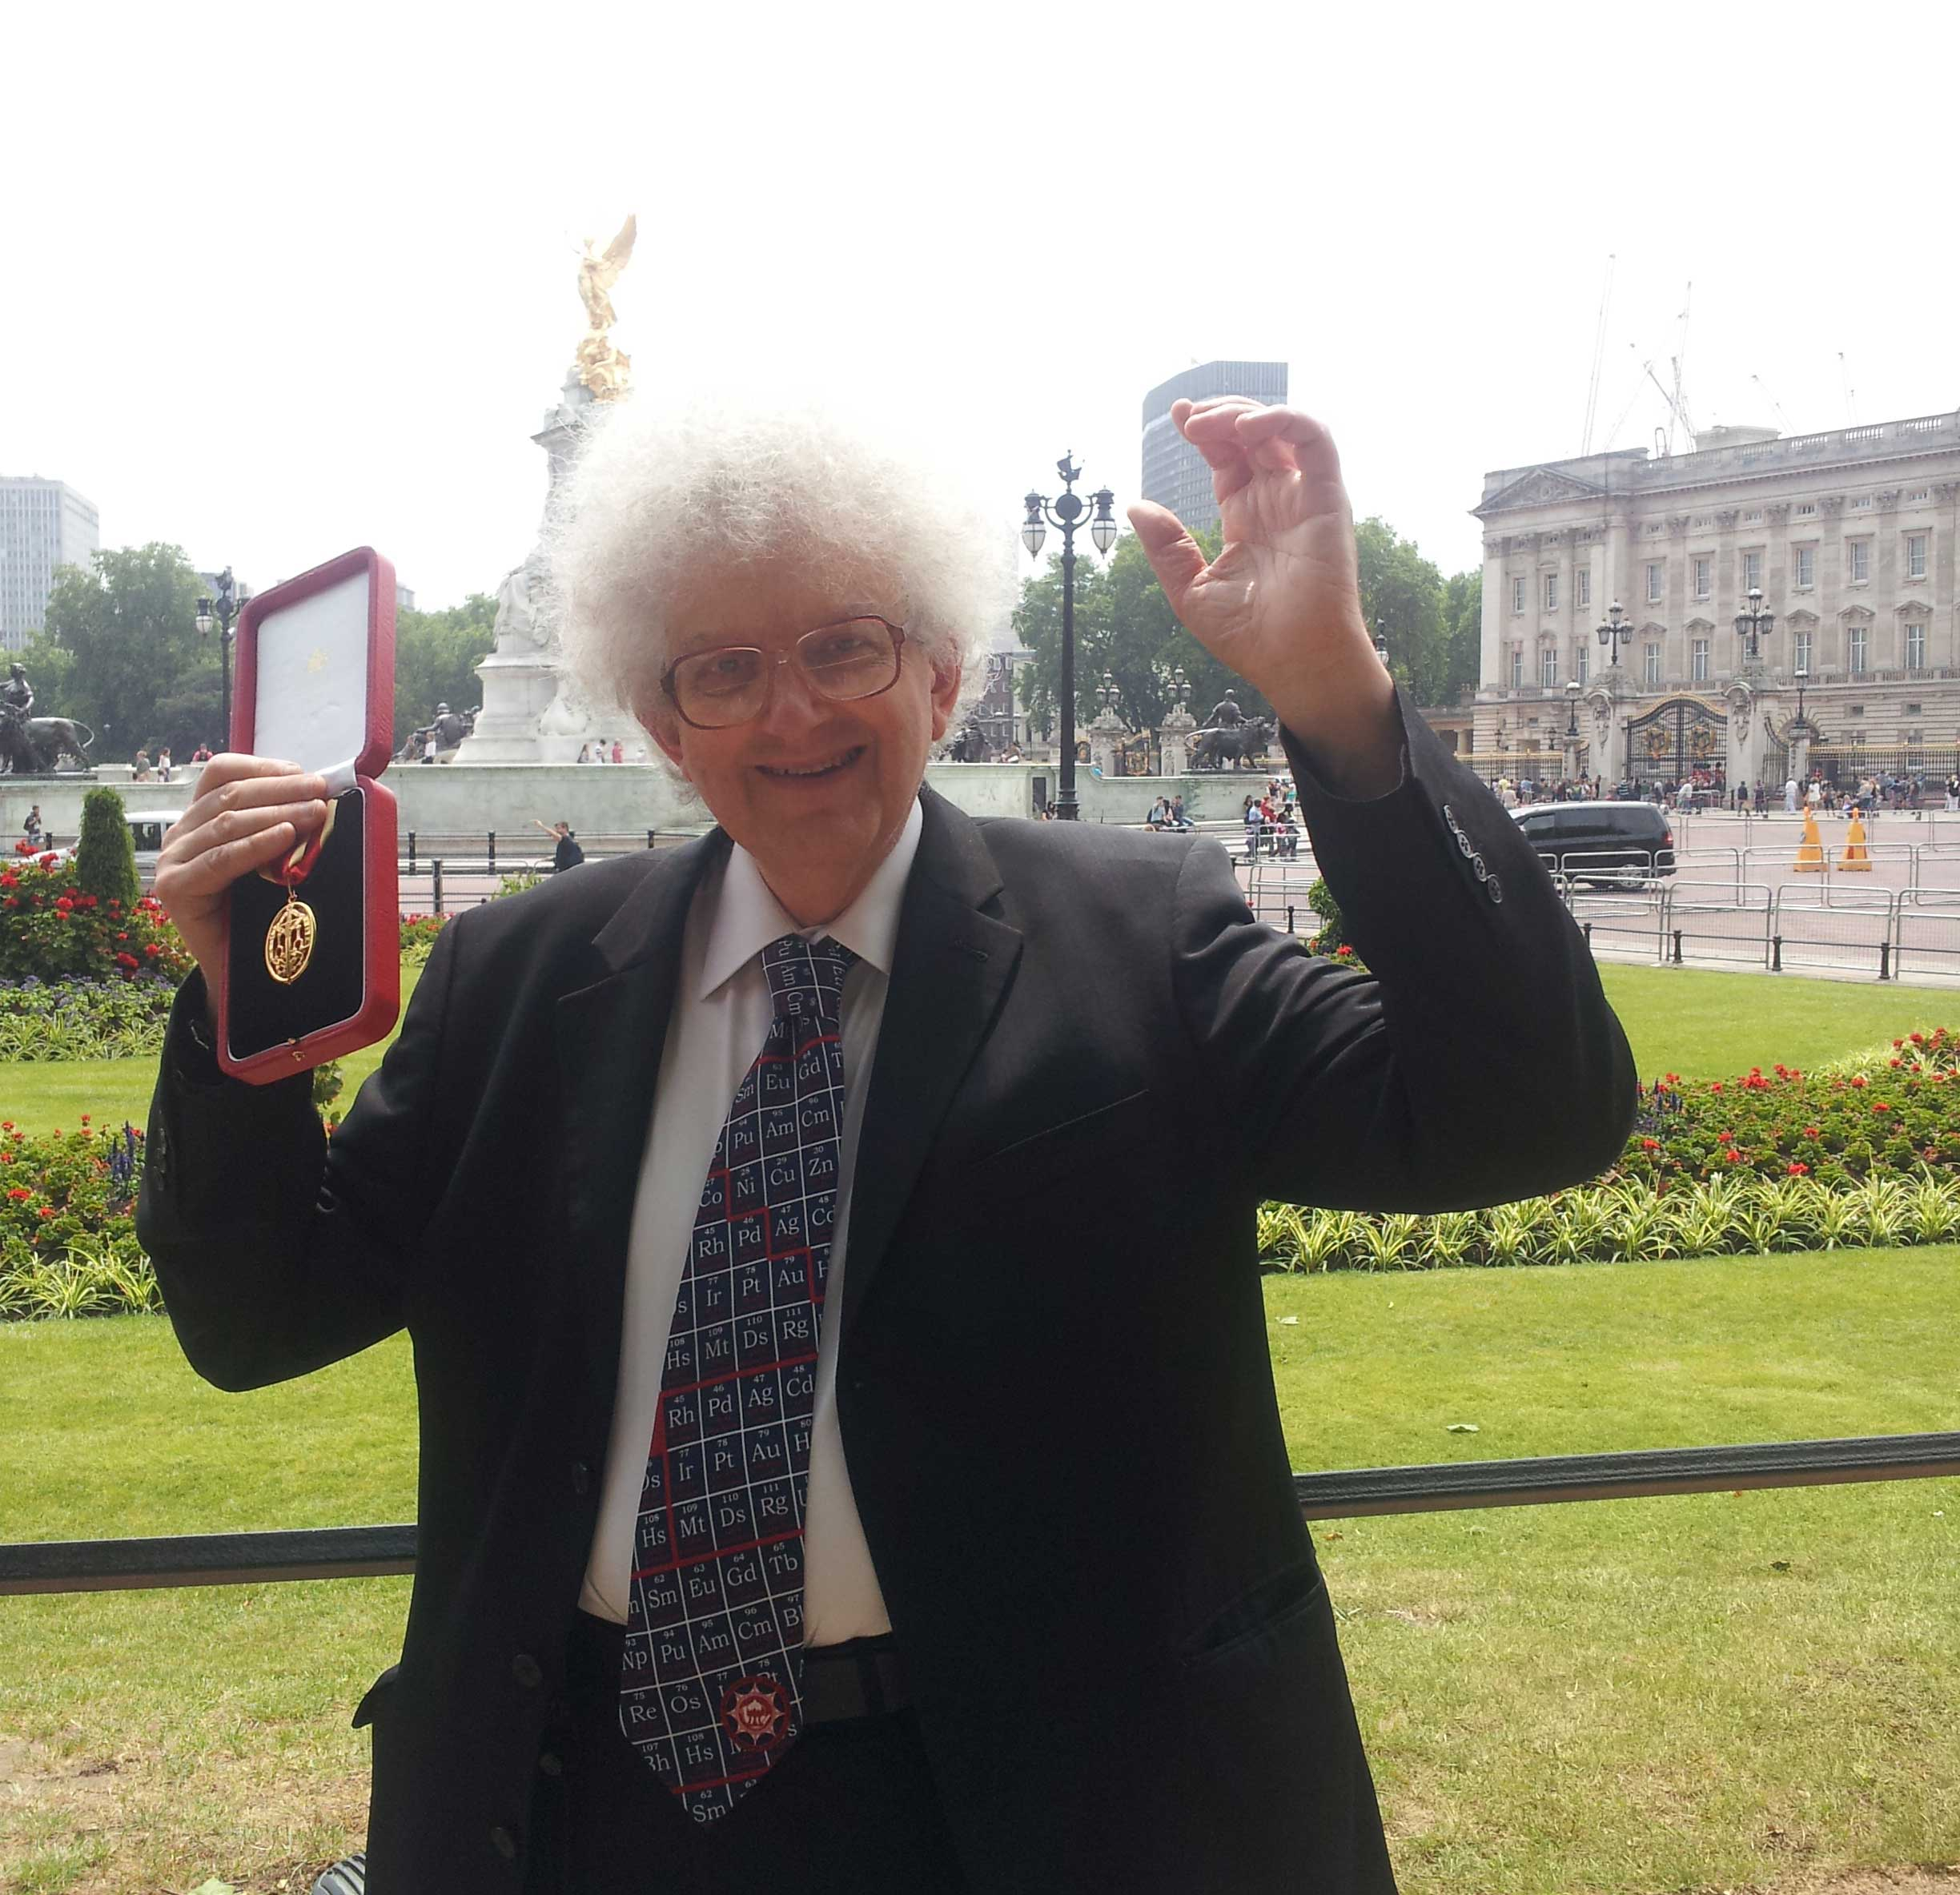 Outside the palace with his medal... Pic by The Prof's daughter!